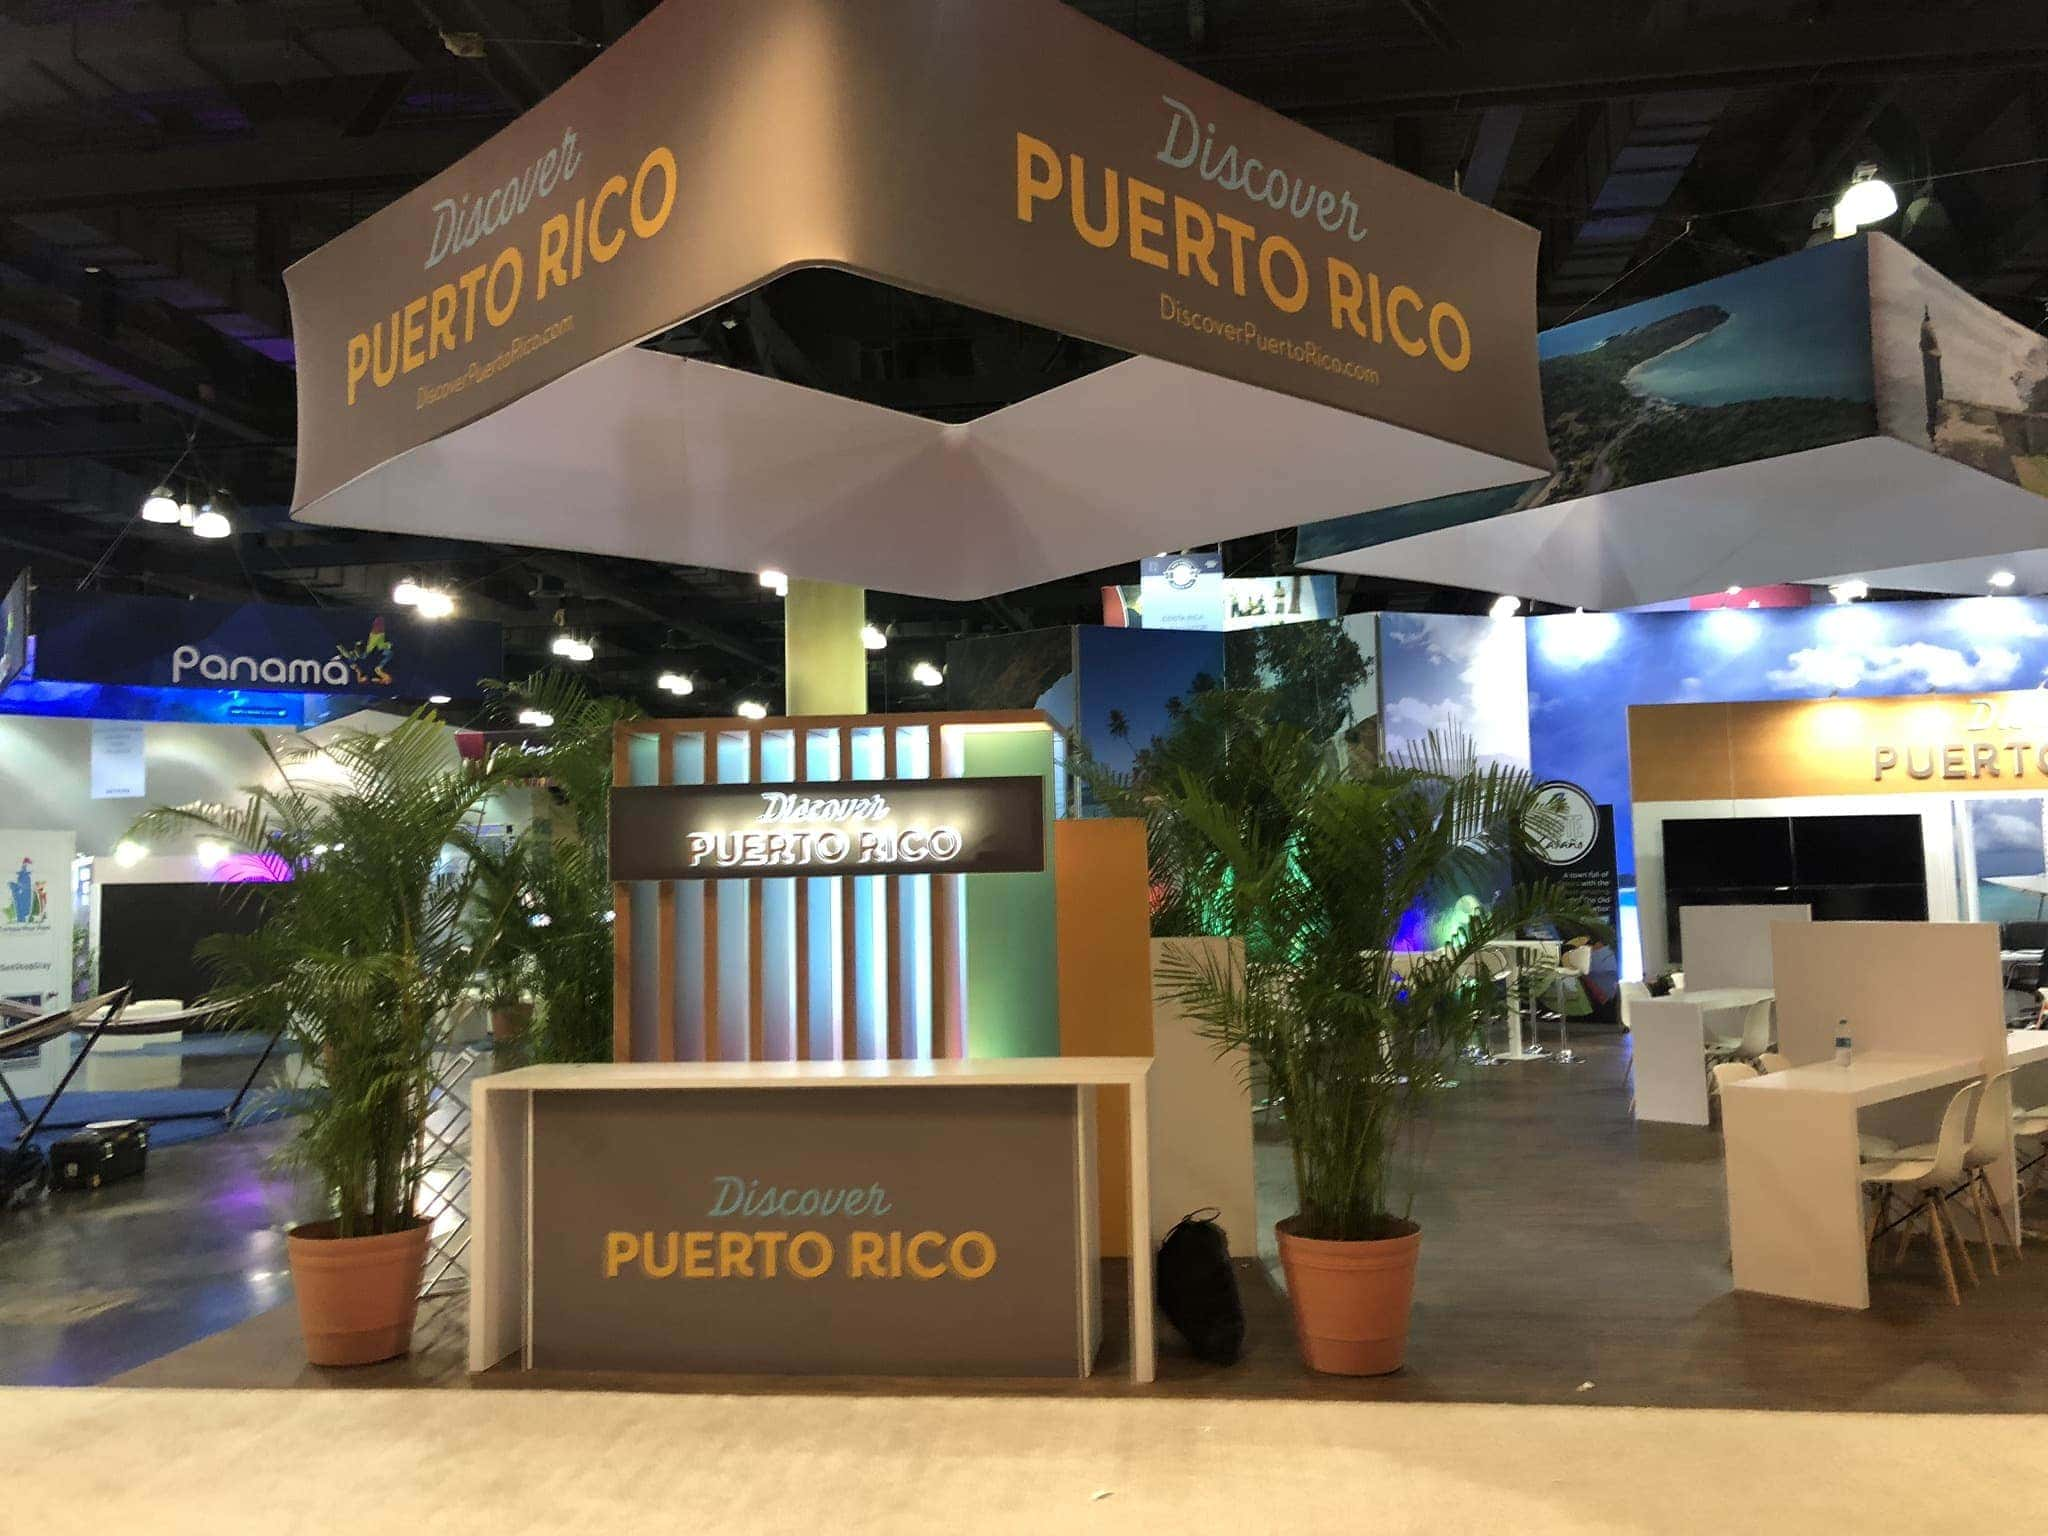 Live Puerto Rico Booth